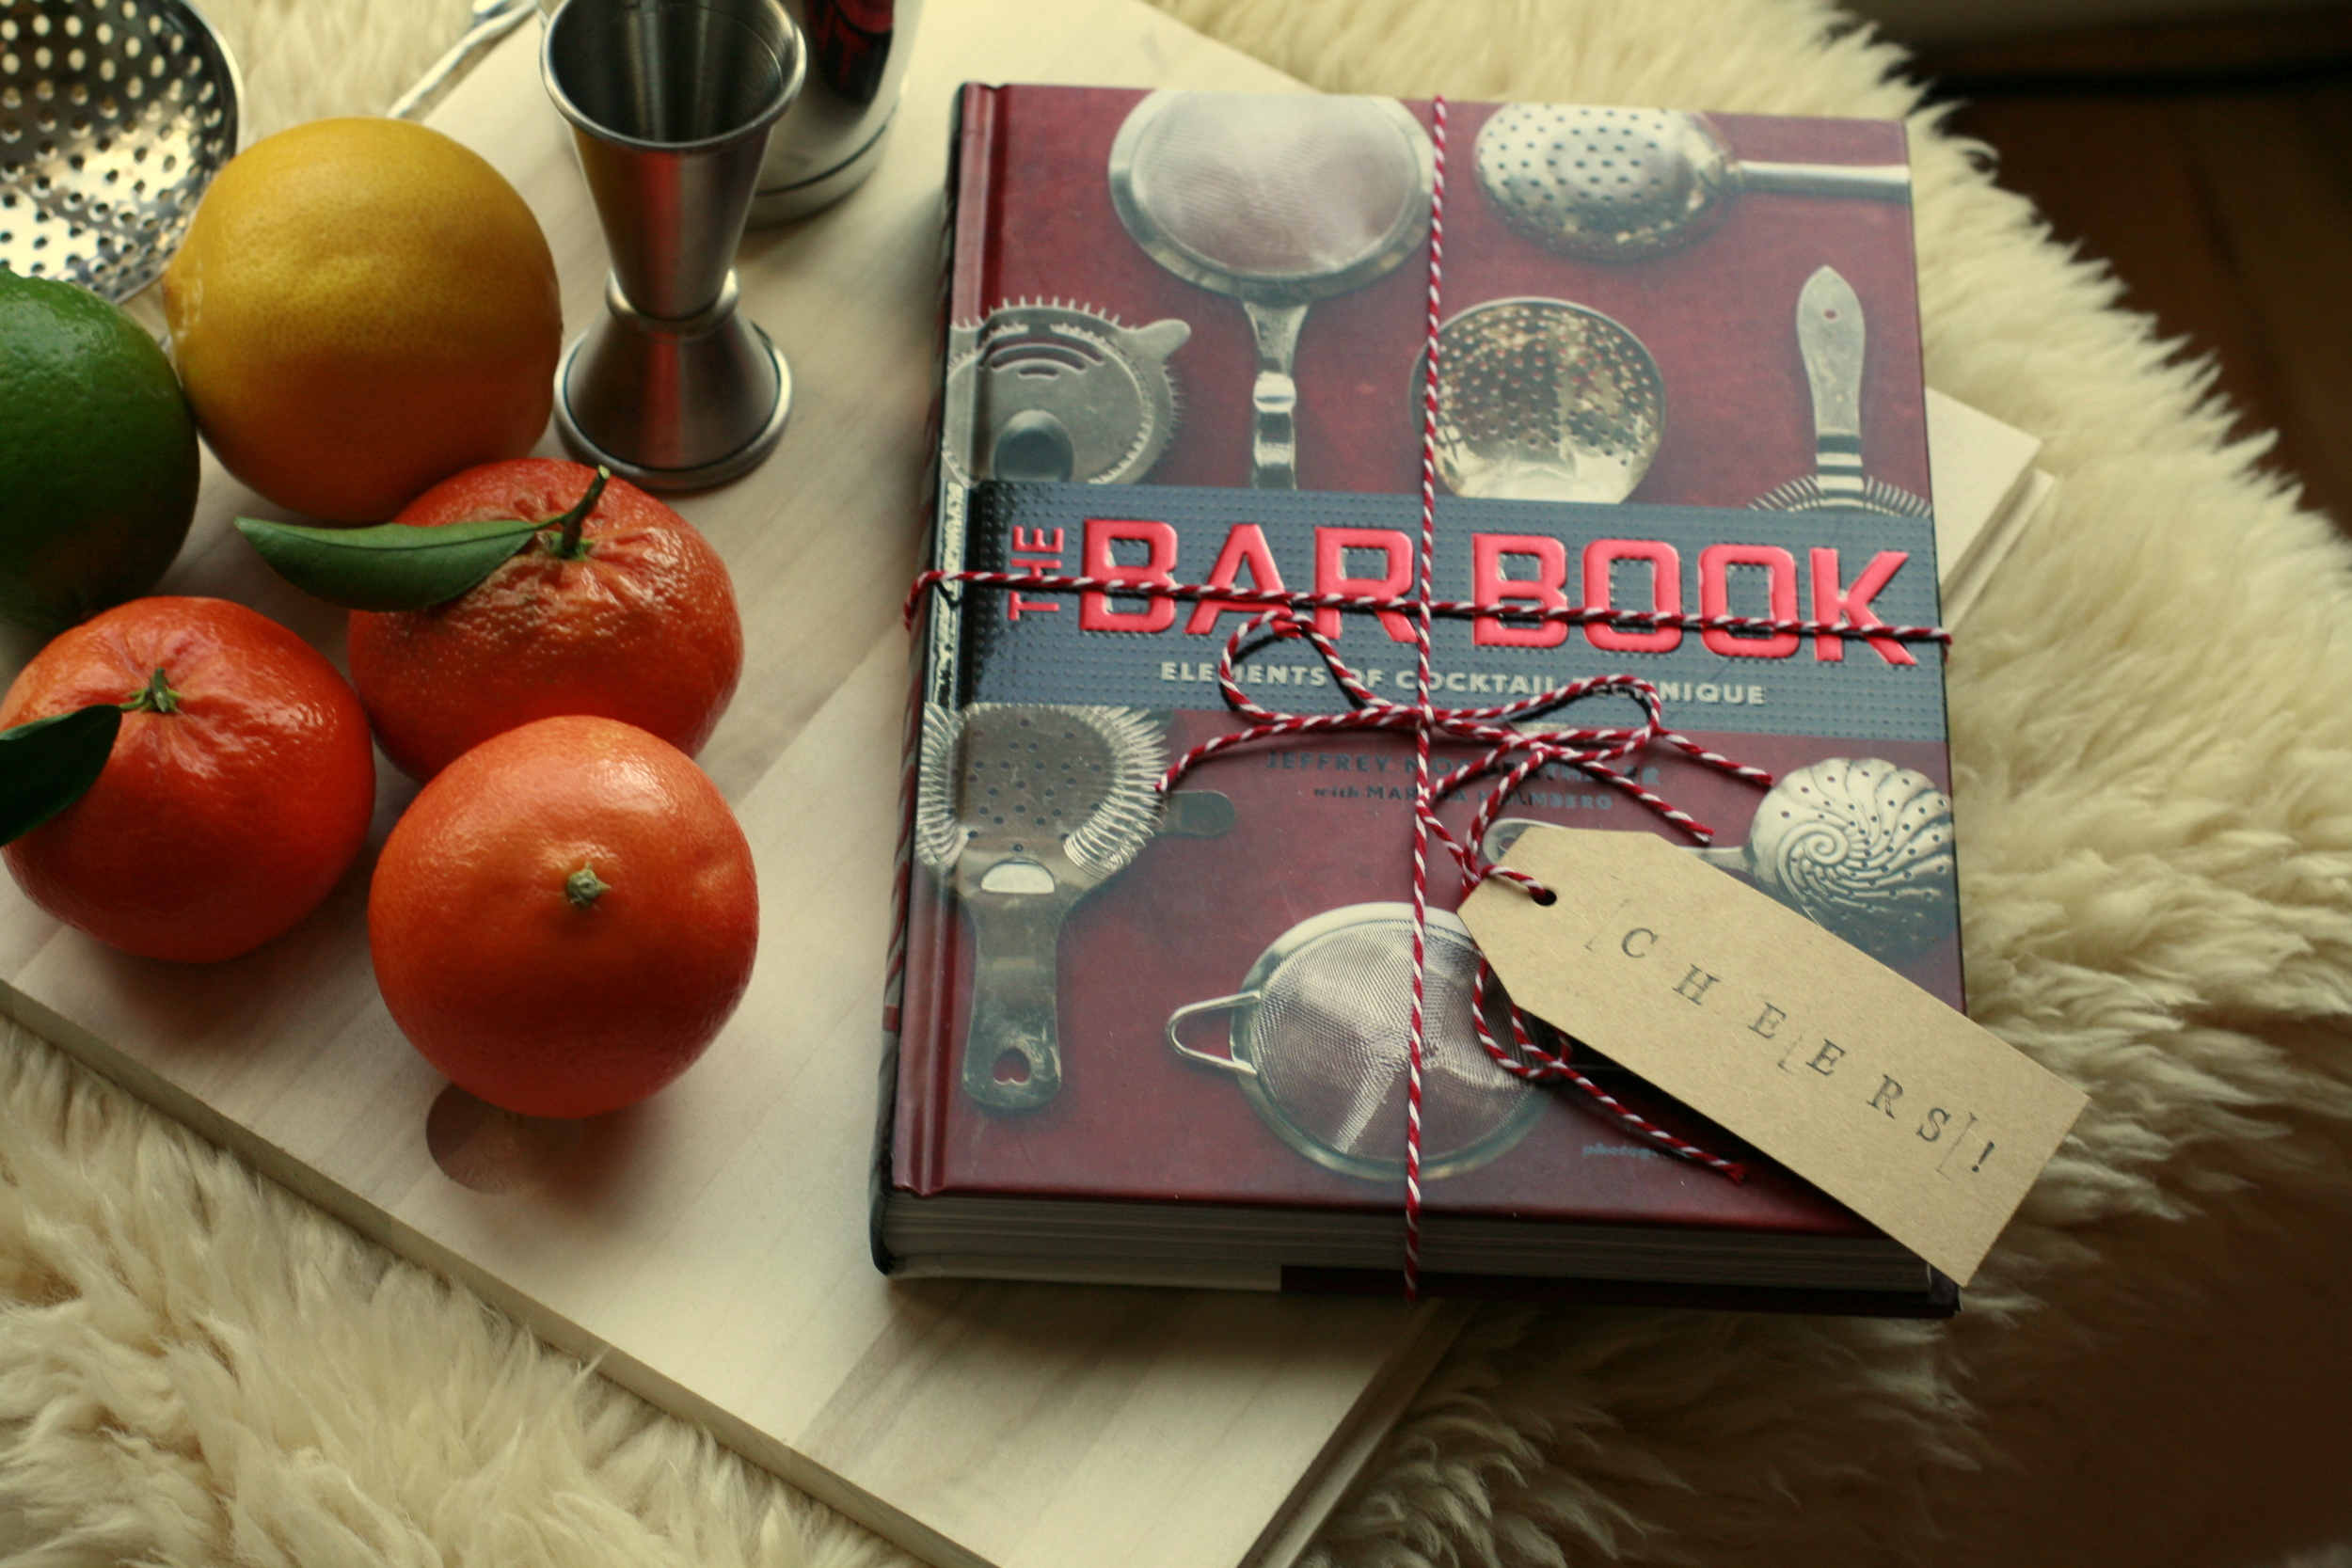 Want to learn how to make excellent cocktails? Keep this book close, and refer to it often.